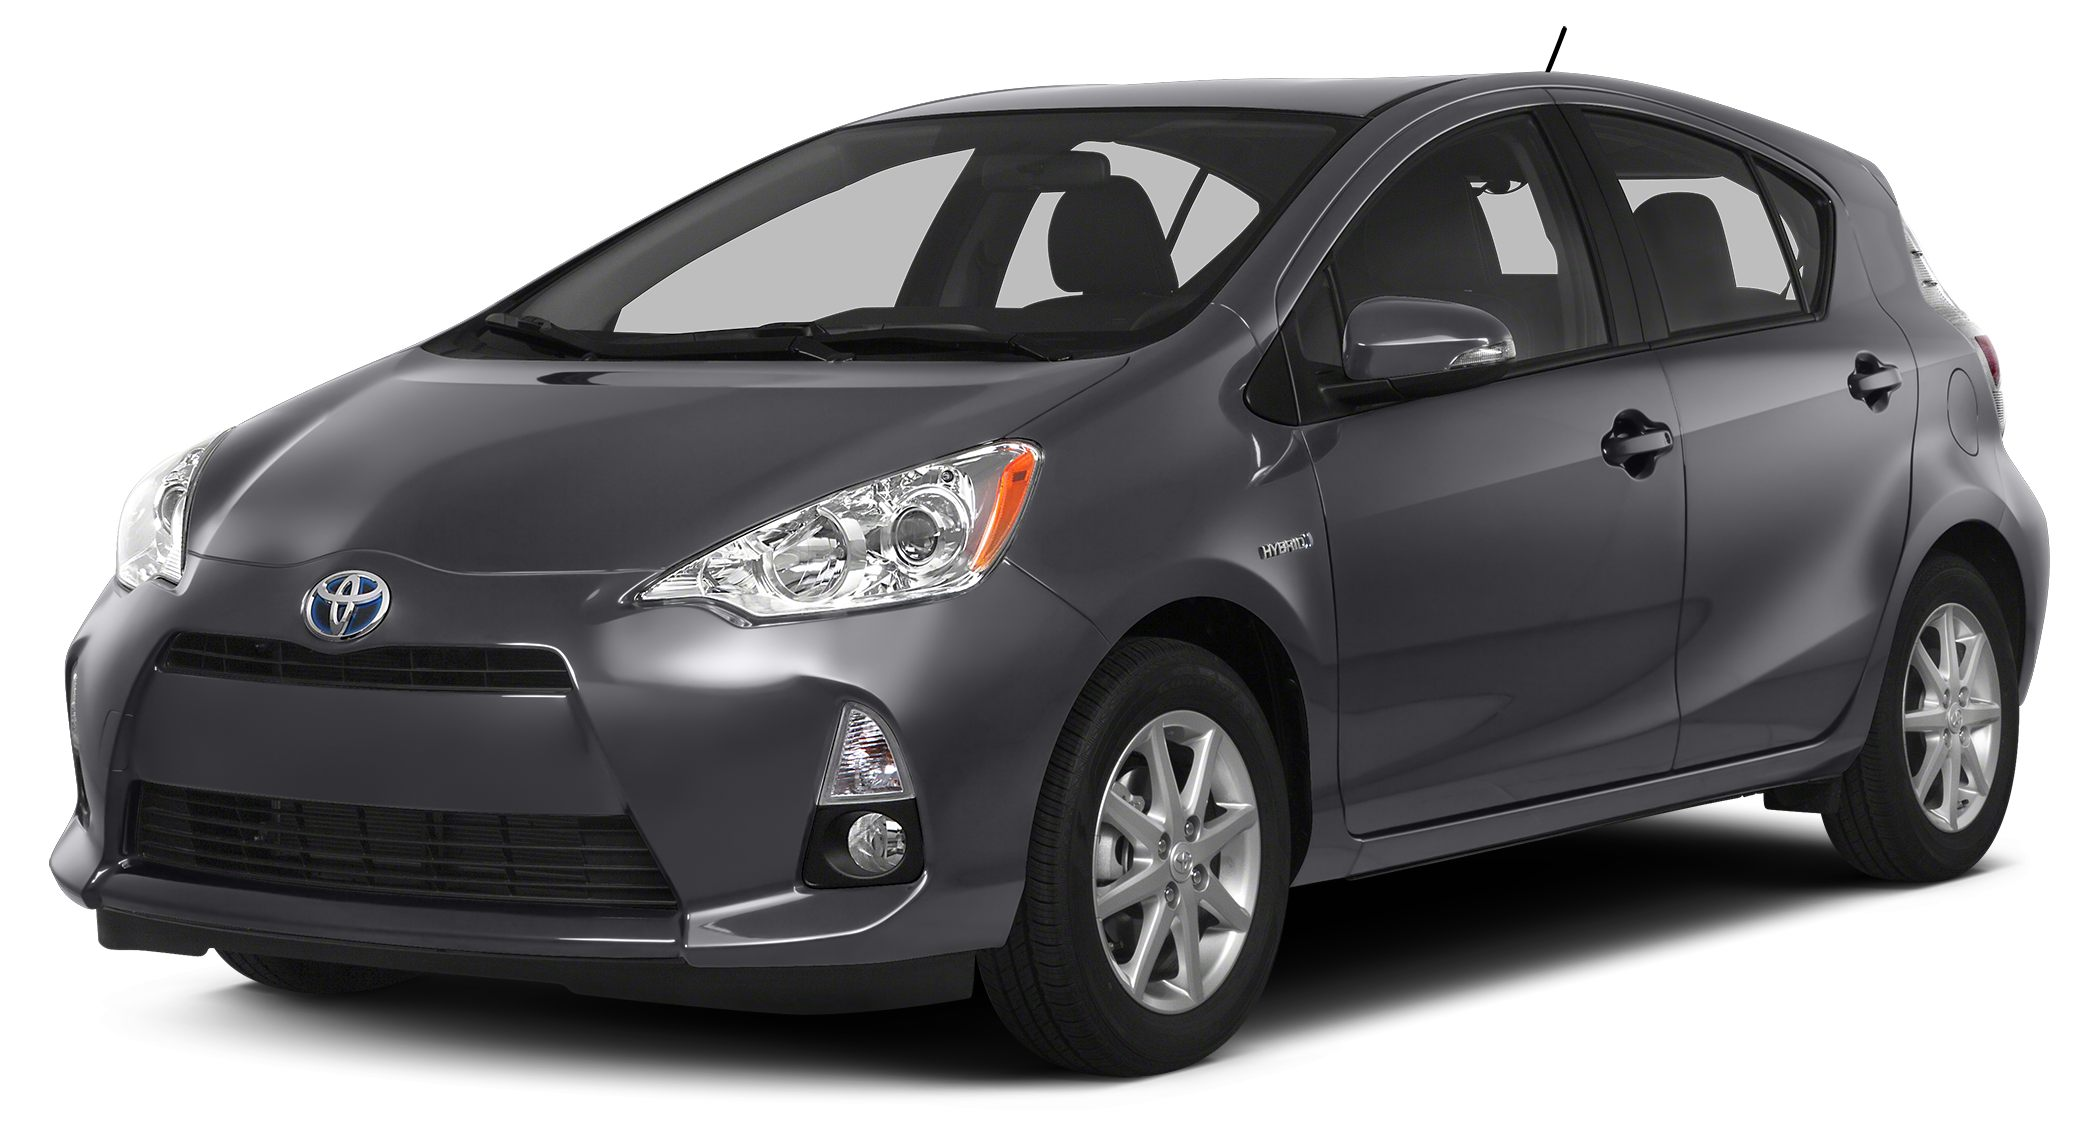 2012 Toyota Prius c One CARFAX 1-Owner LOW MILES - 44226 FUEL EFFICIENT 46 MPG Hwy53 MPG City